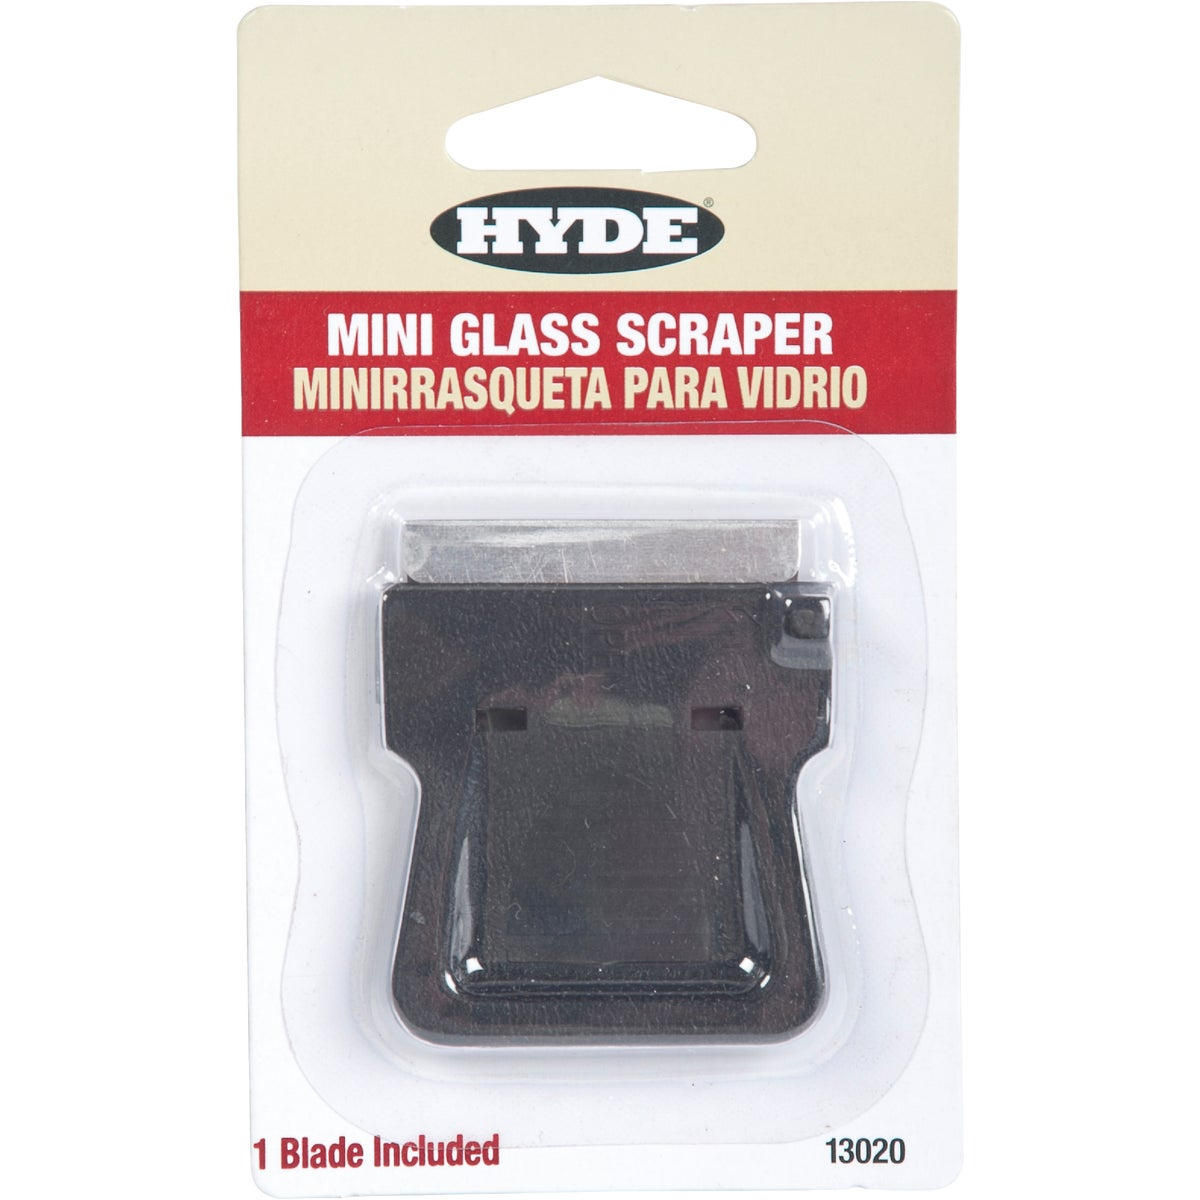 MINI GLASS SCRAPER - 13020 by Hyde Mfg Co